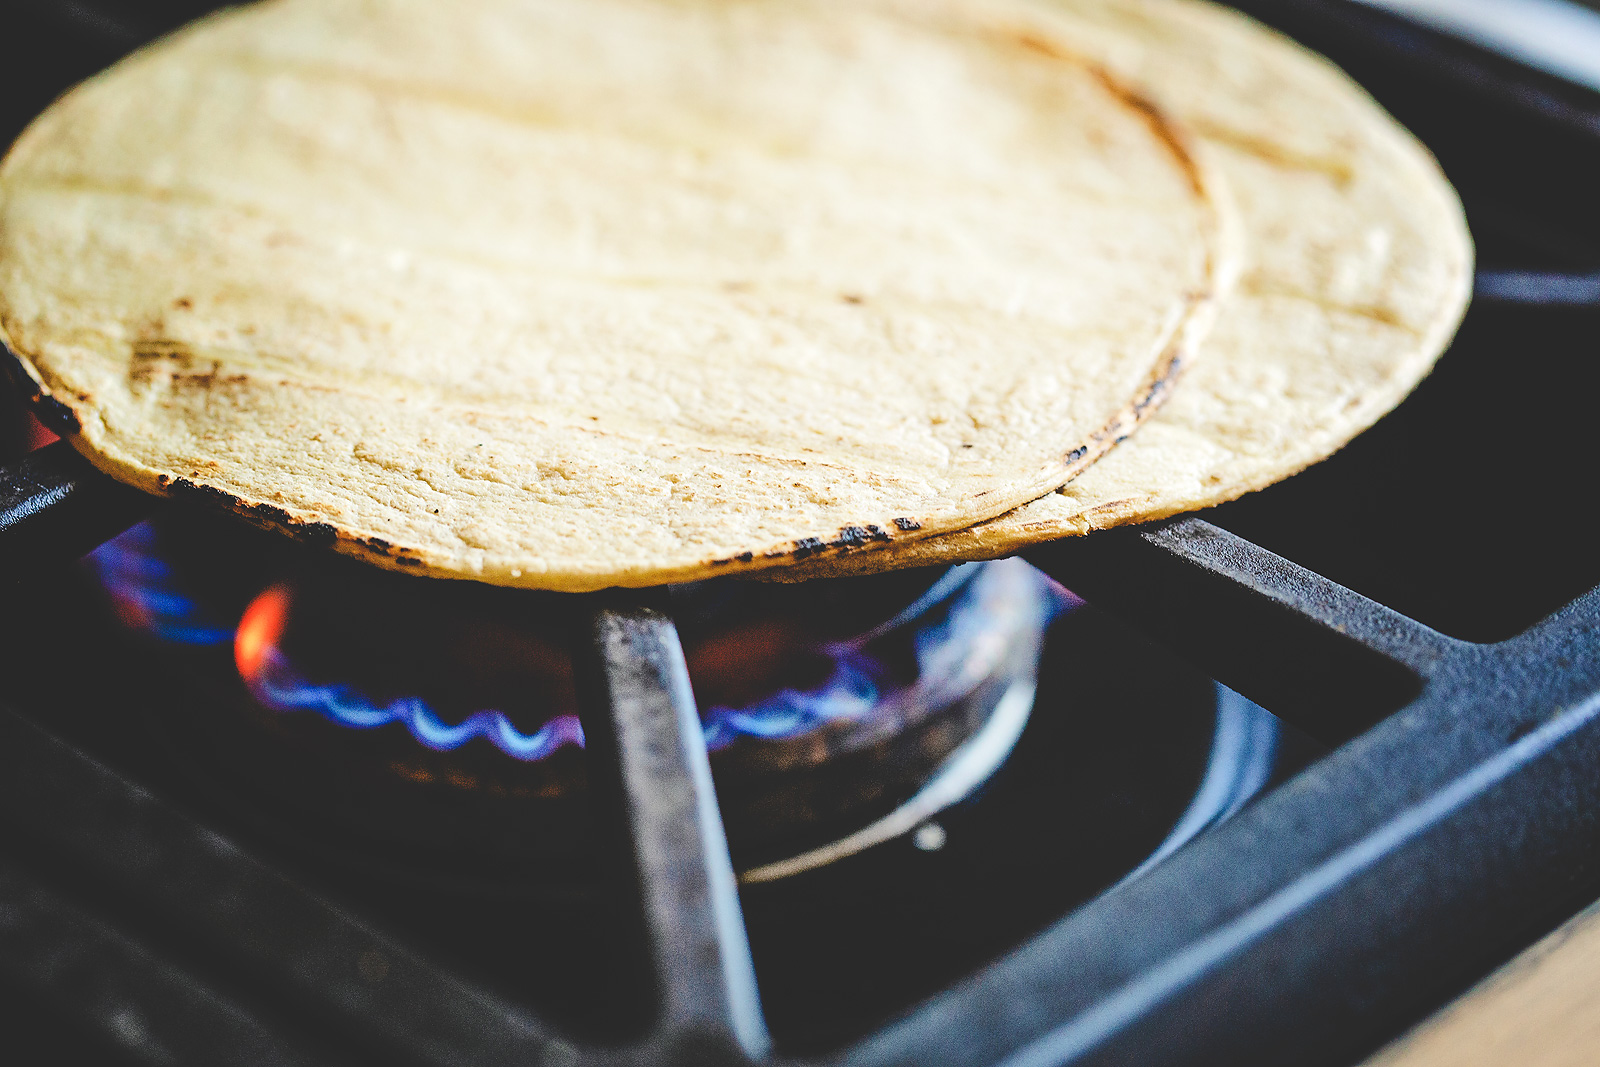 Corn tortillas warmed on a gas stove.